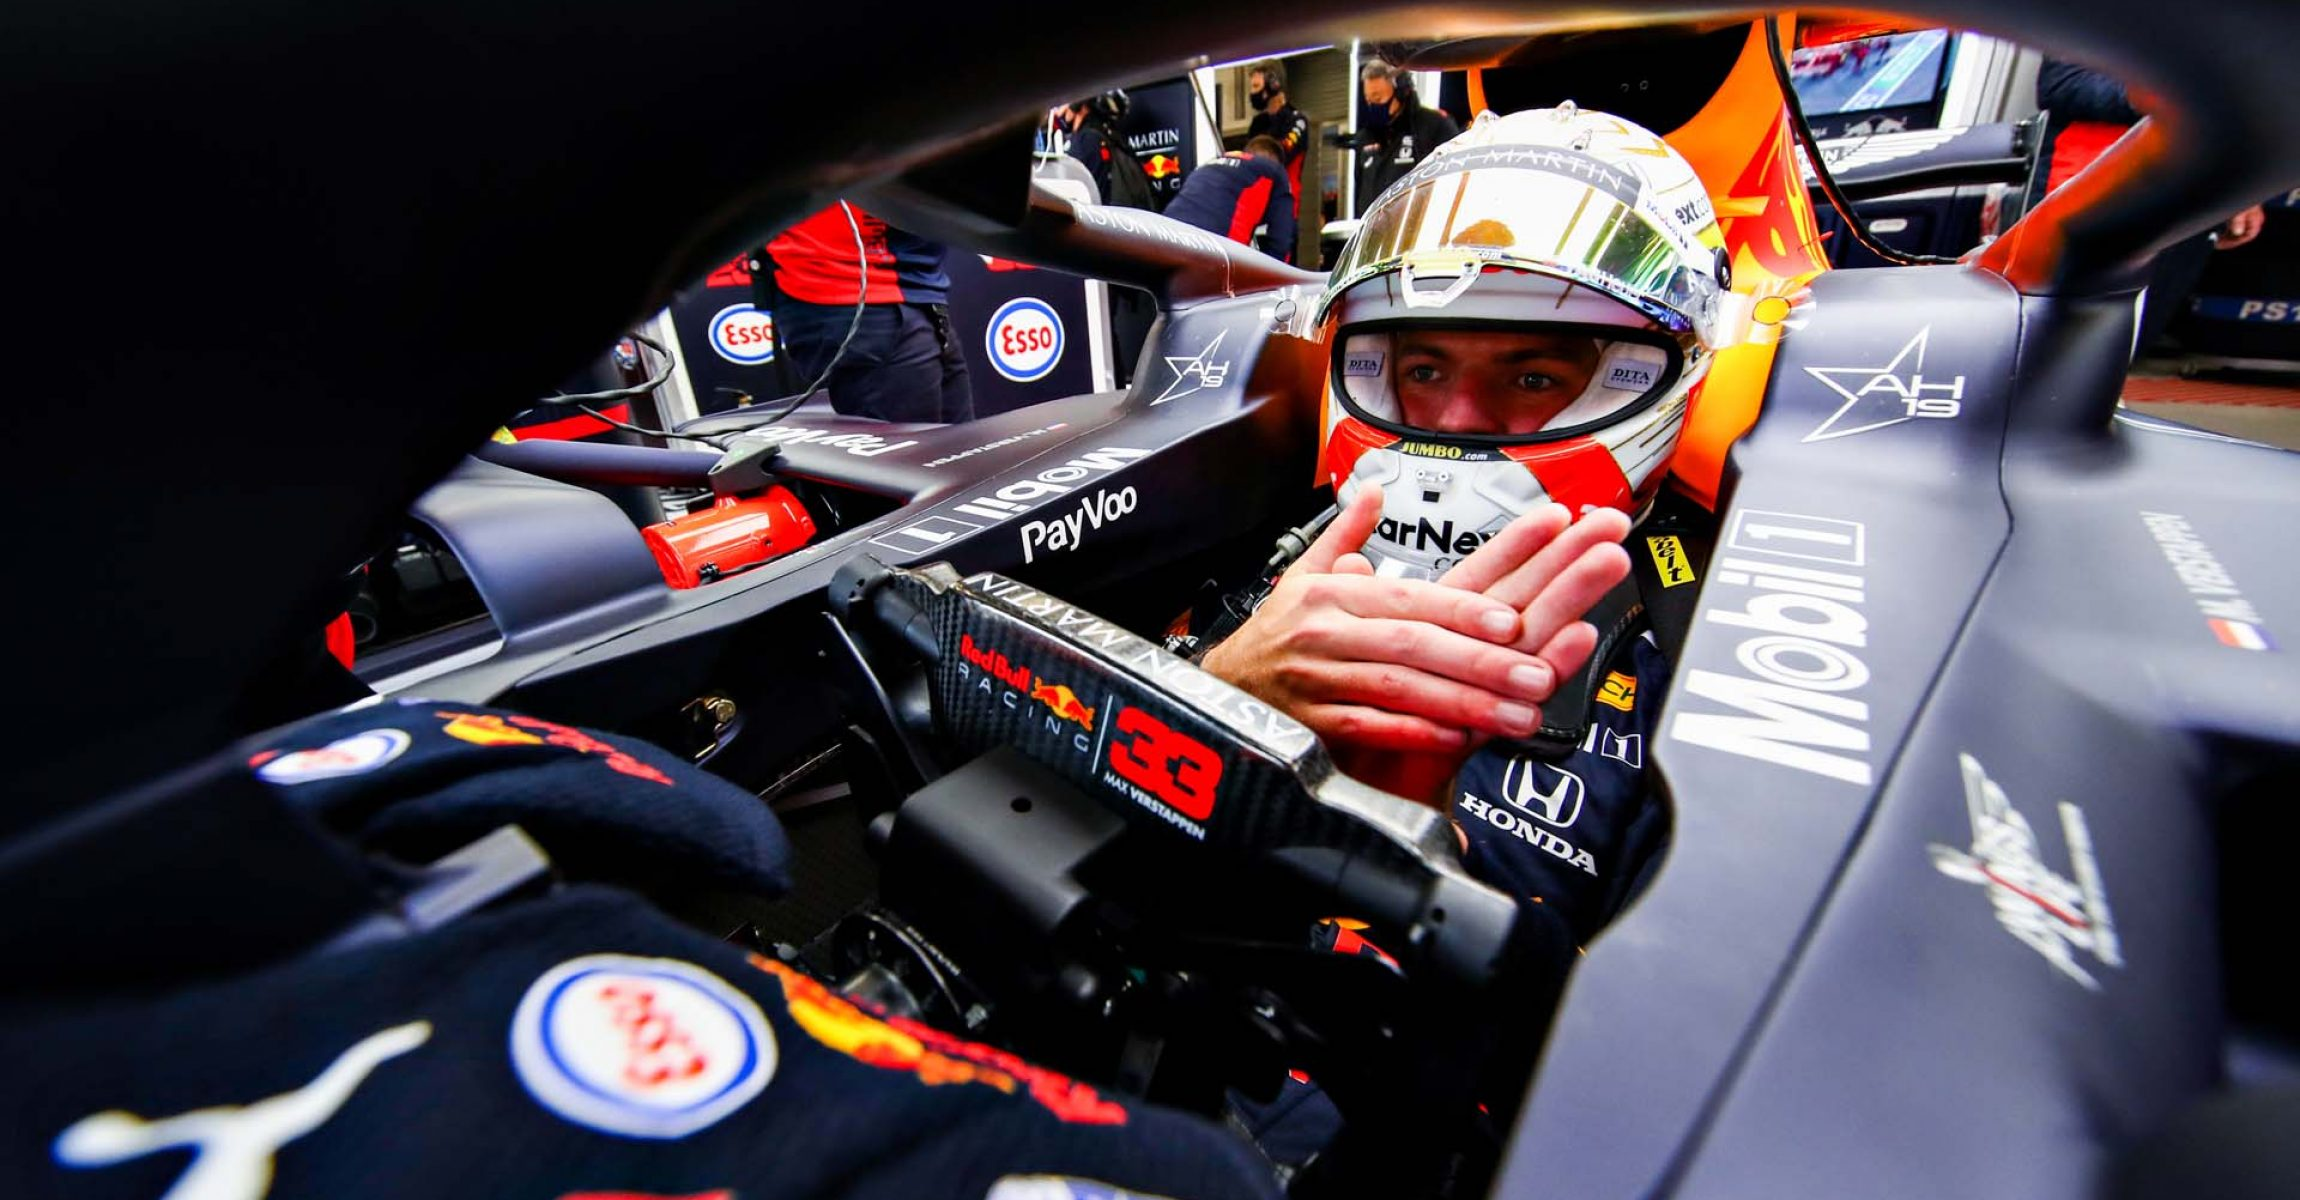 SPA, BELGIUM - AUGUST 29: Max Verstappen of Netherlands and Red Bull Racing prepares to drive during final practice for the F1 Grand Prix of Belgium at Circuit de Spa-Francorchamps on August 29, 2020 in Spa, Belgium. (Photo by Mark Thompson/Getty Images)